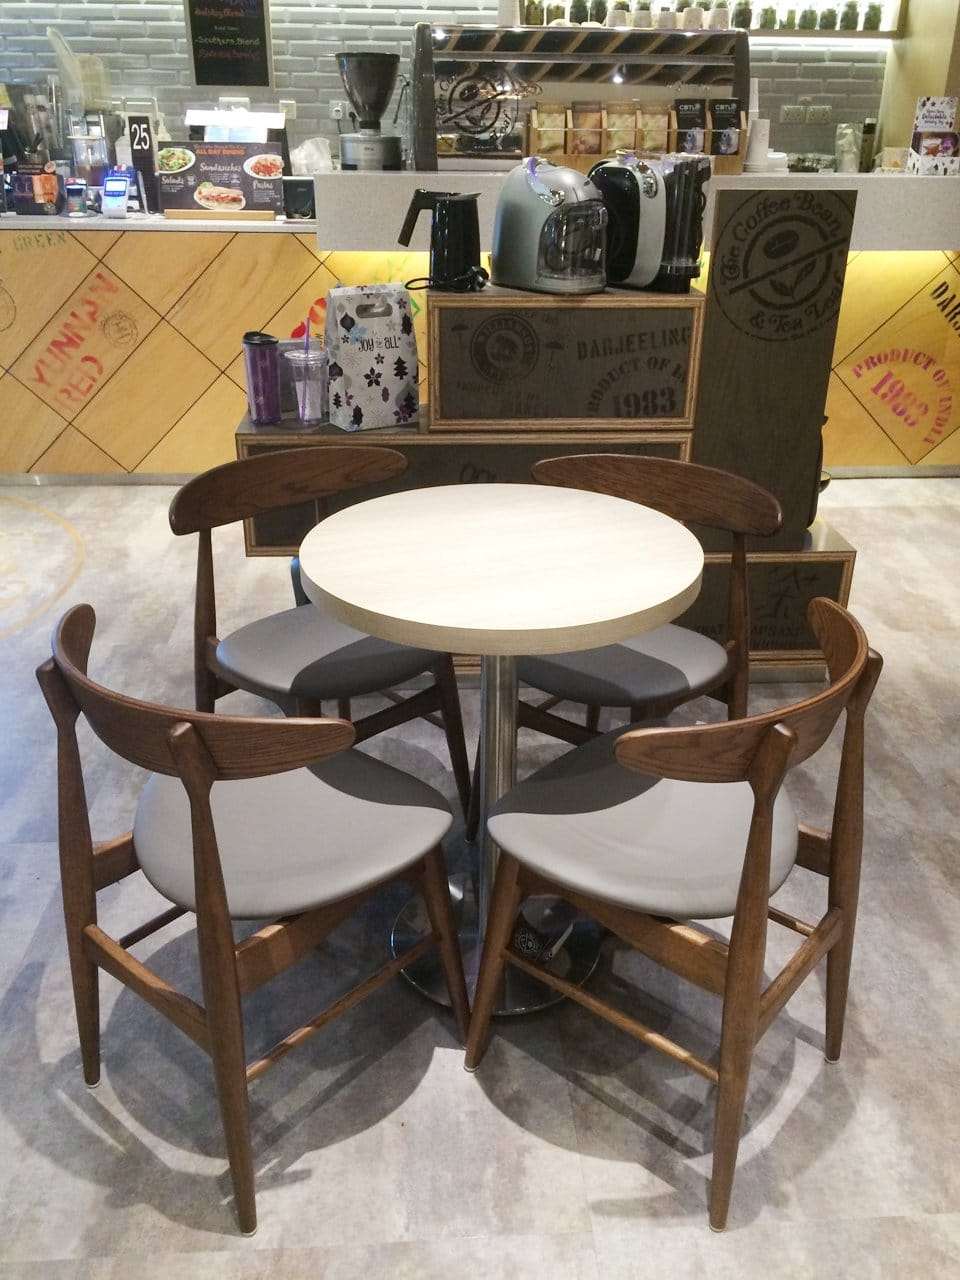 Coffee Bean - Alexandra Retail Centre (ARC) | Products Seen: [Hanoi Chair & Customised Laminated Tabletop with Traxtor Round Table Base]<br />